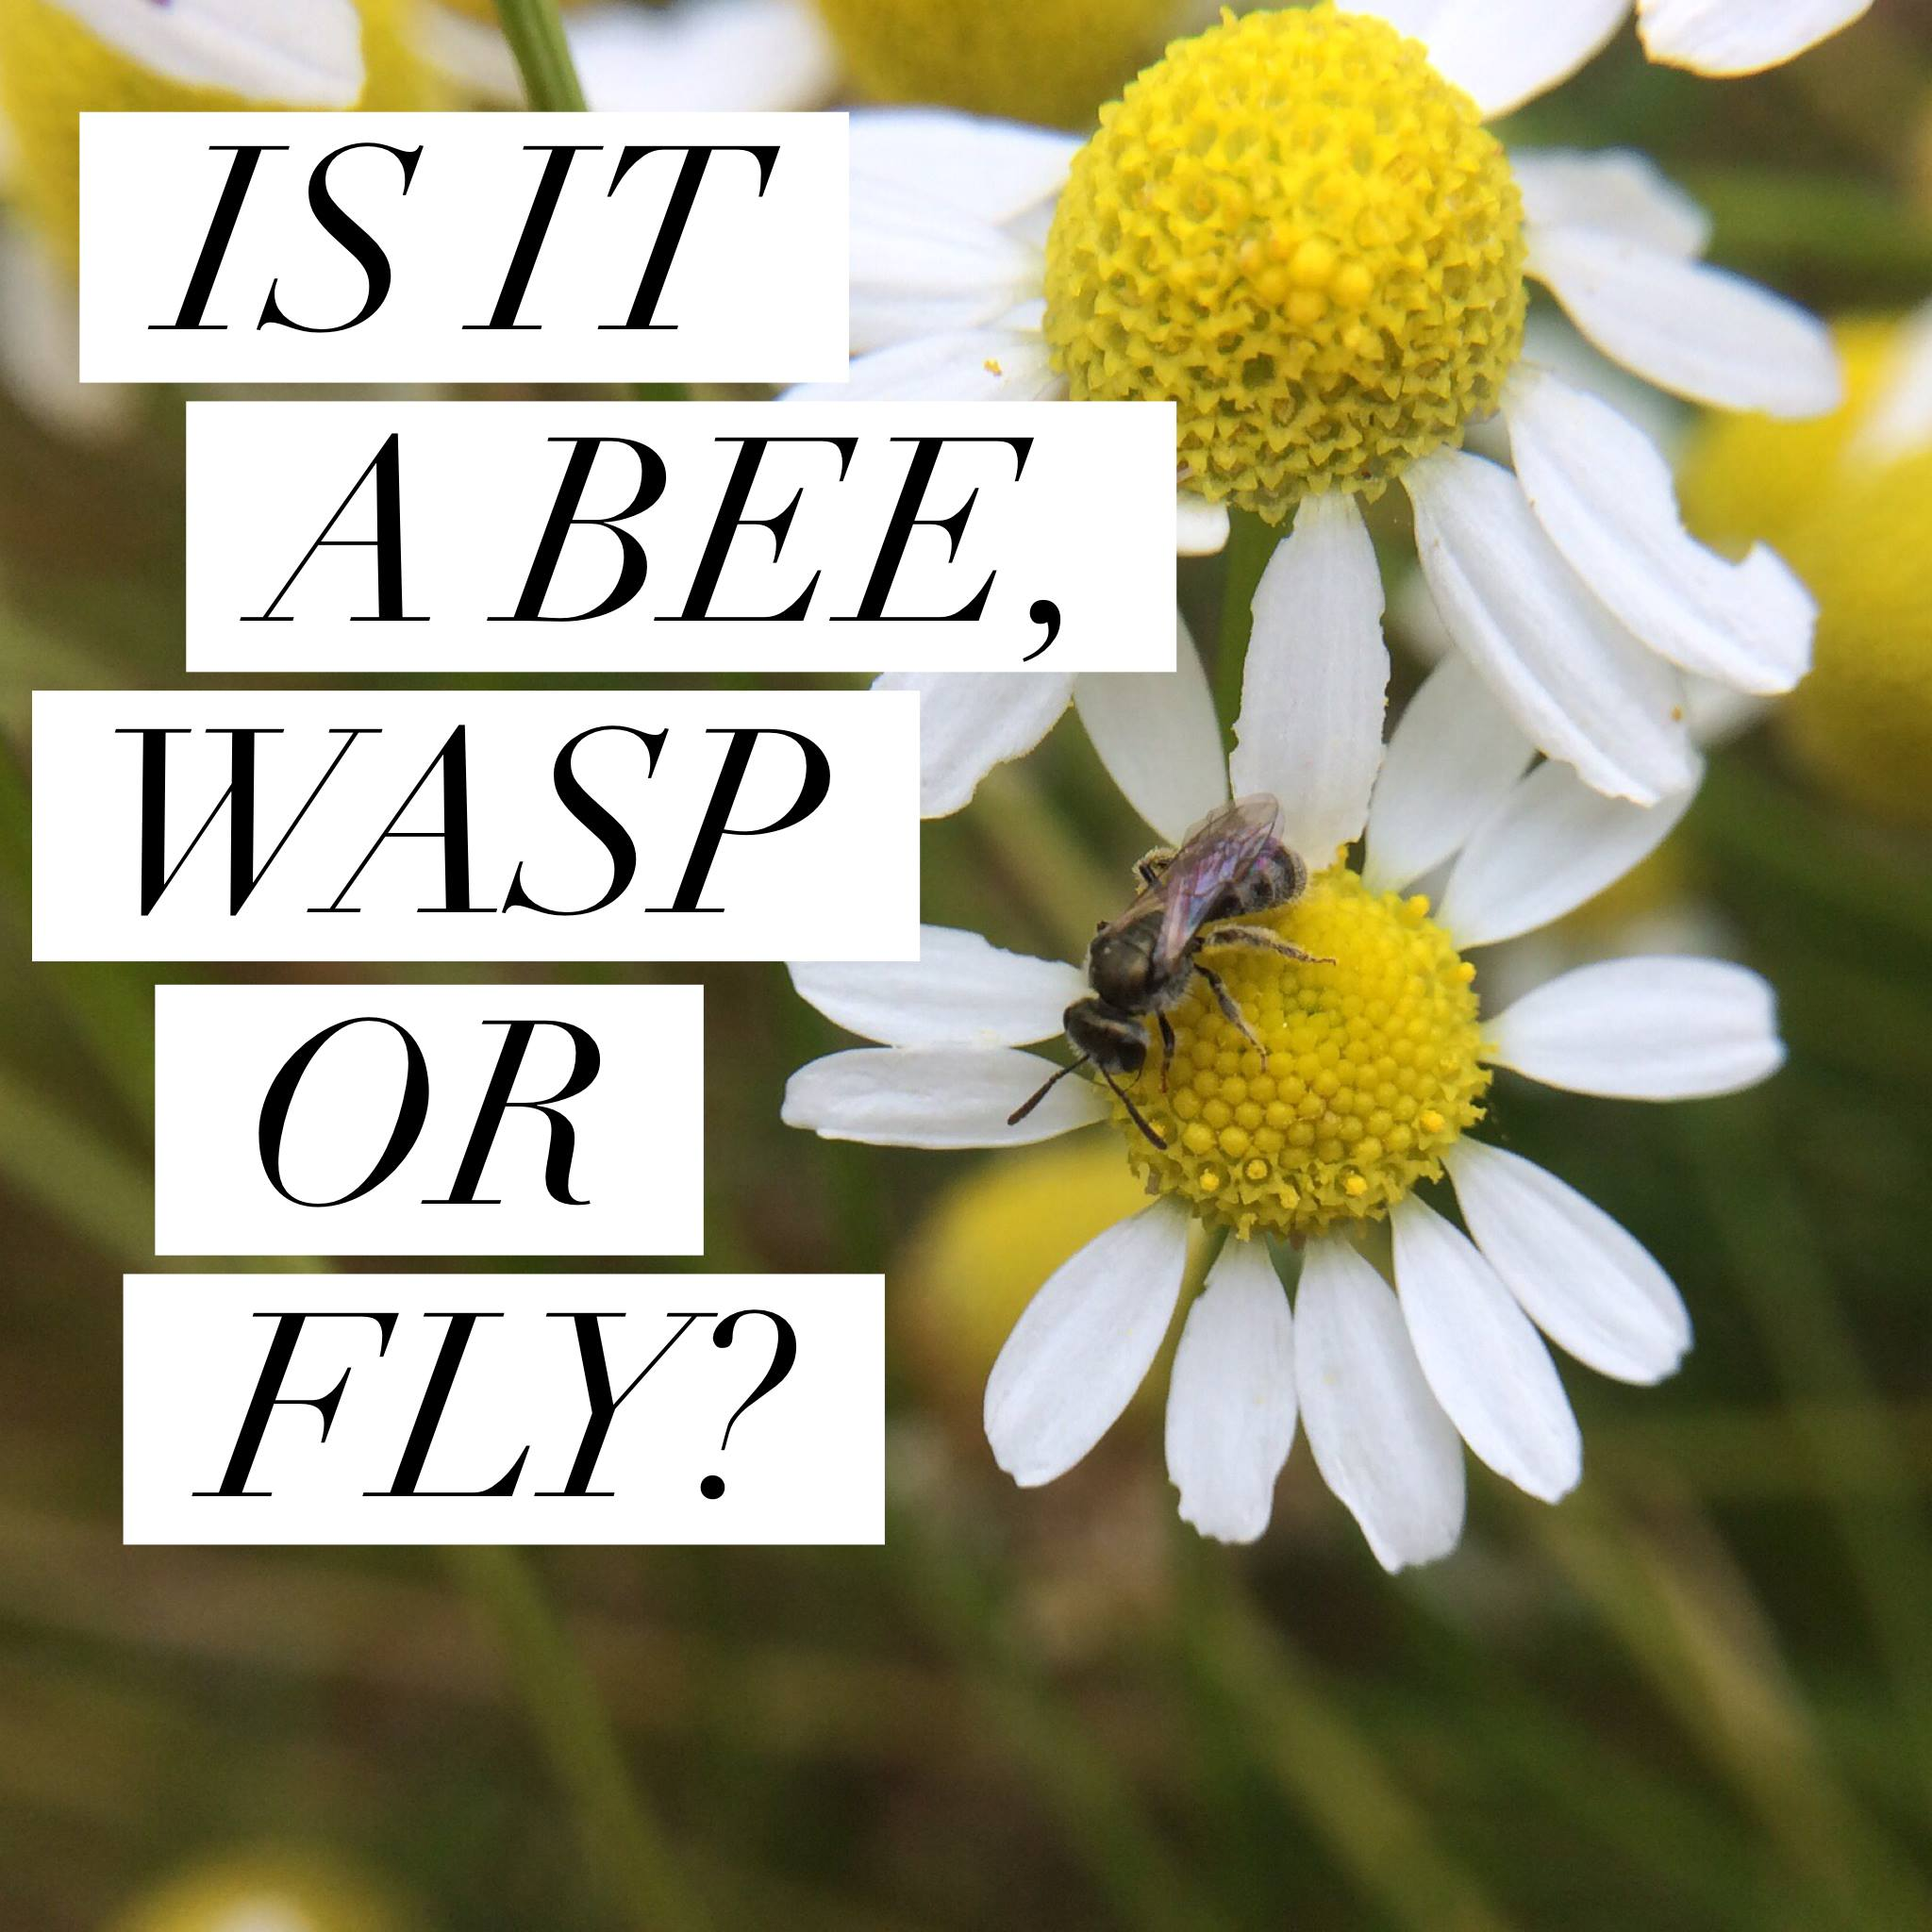 IS IT A BEE, WASP OR FLY?